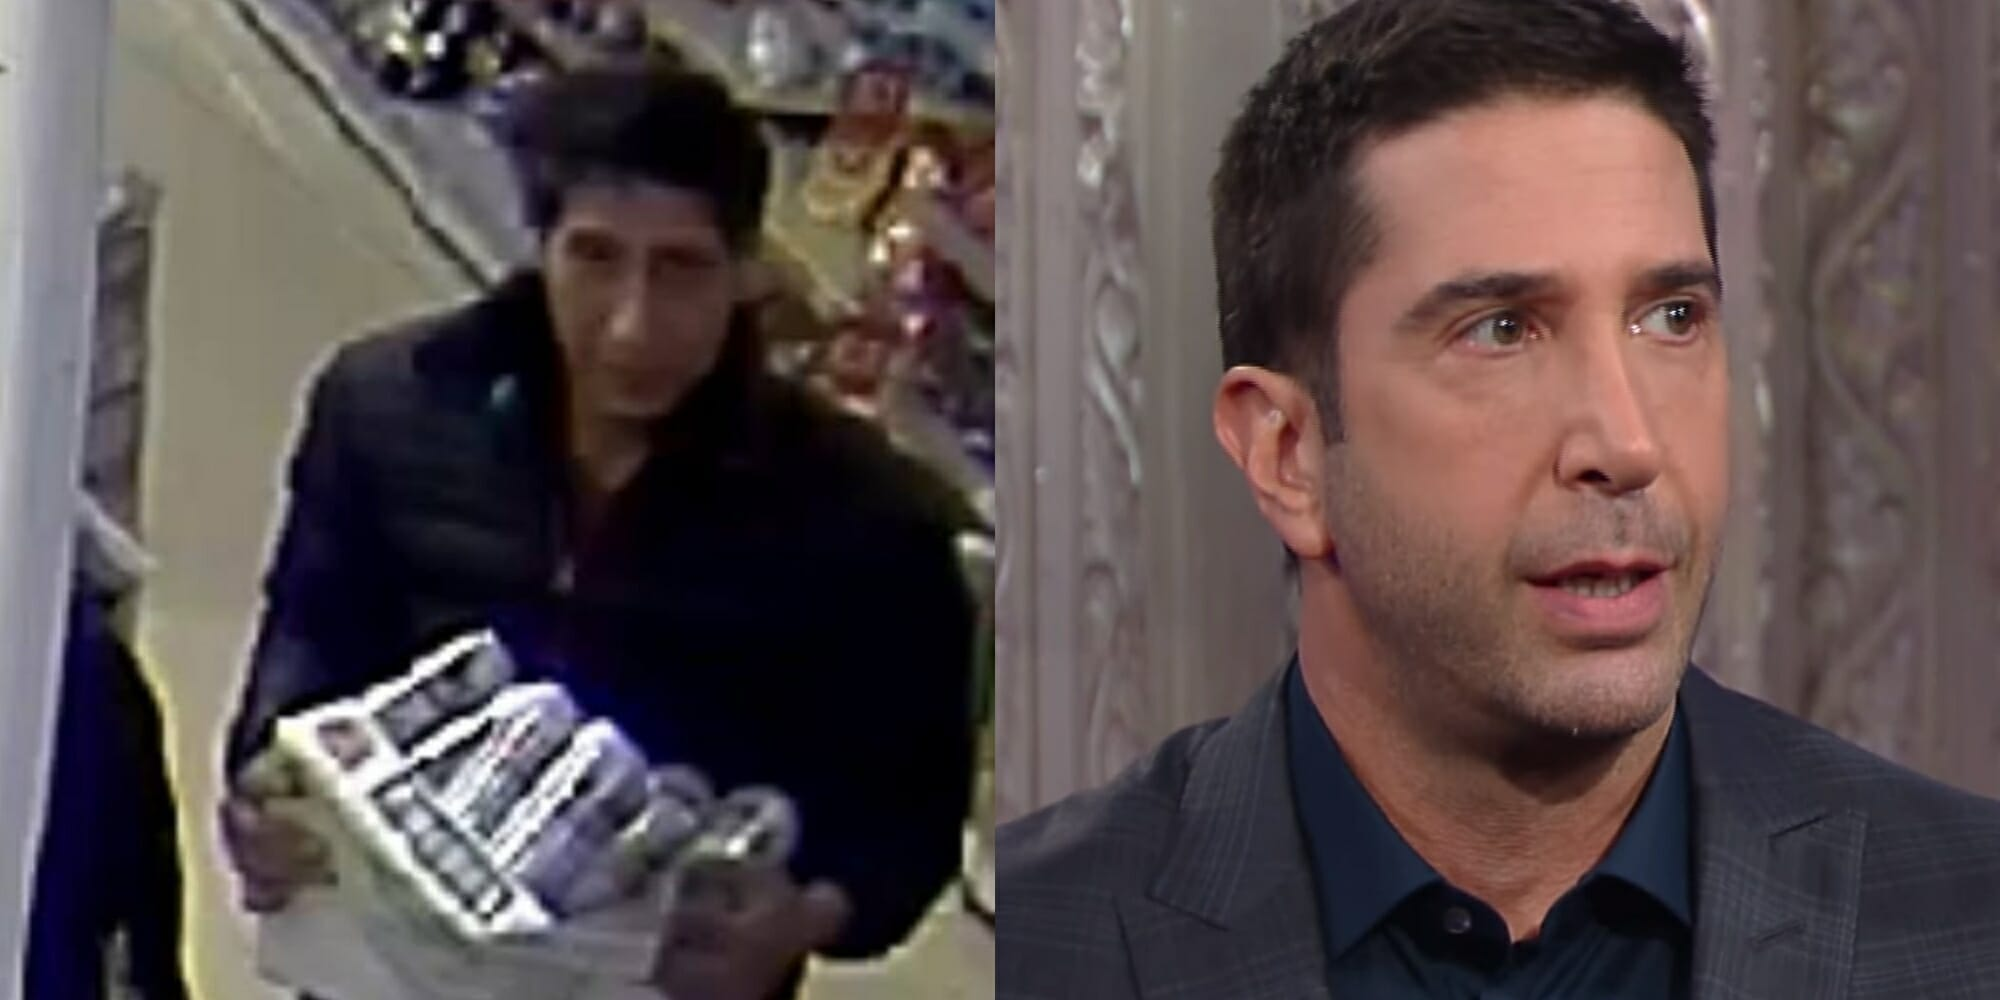 Thief Goes Viral For Looking Like Ross From 'Friends